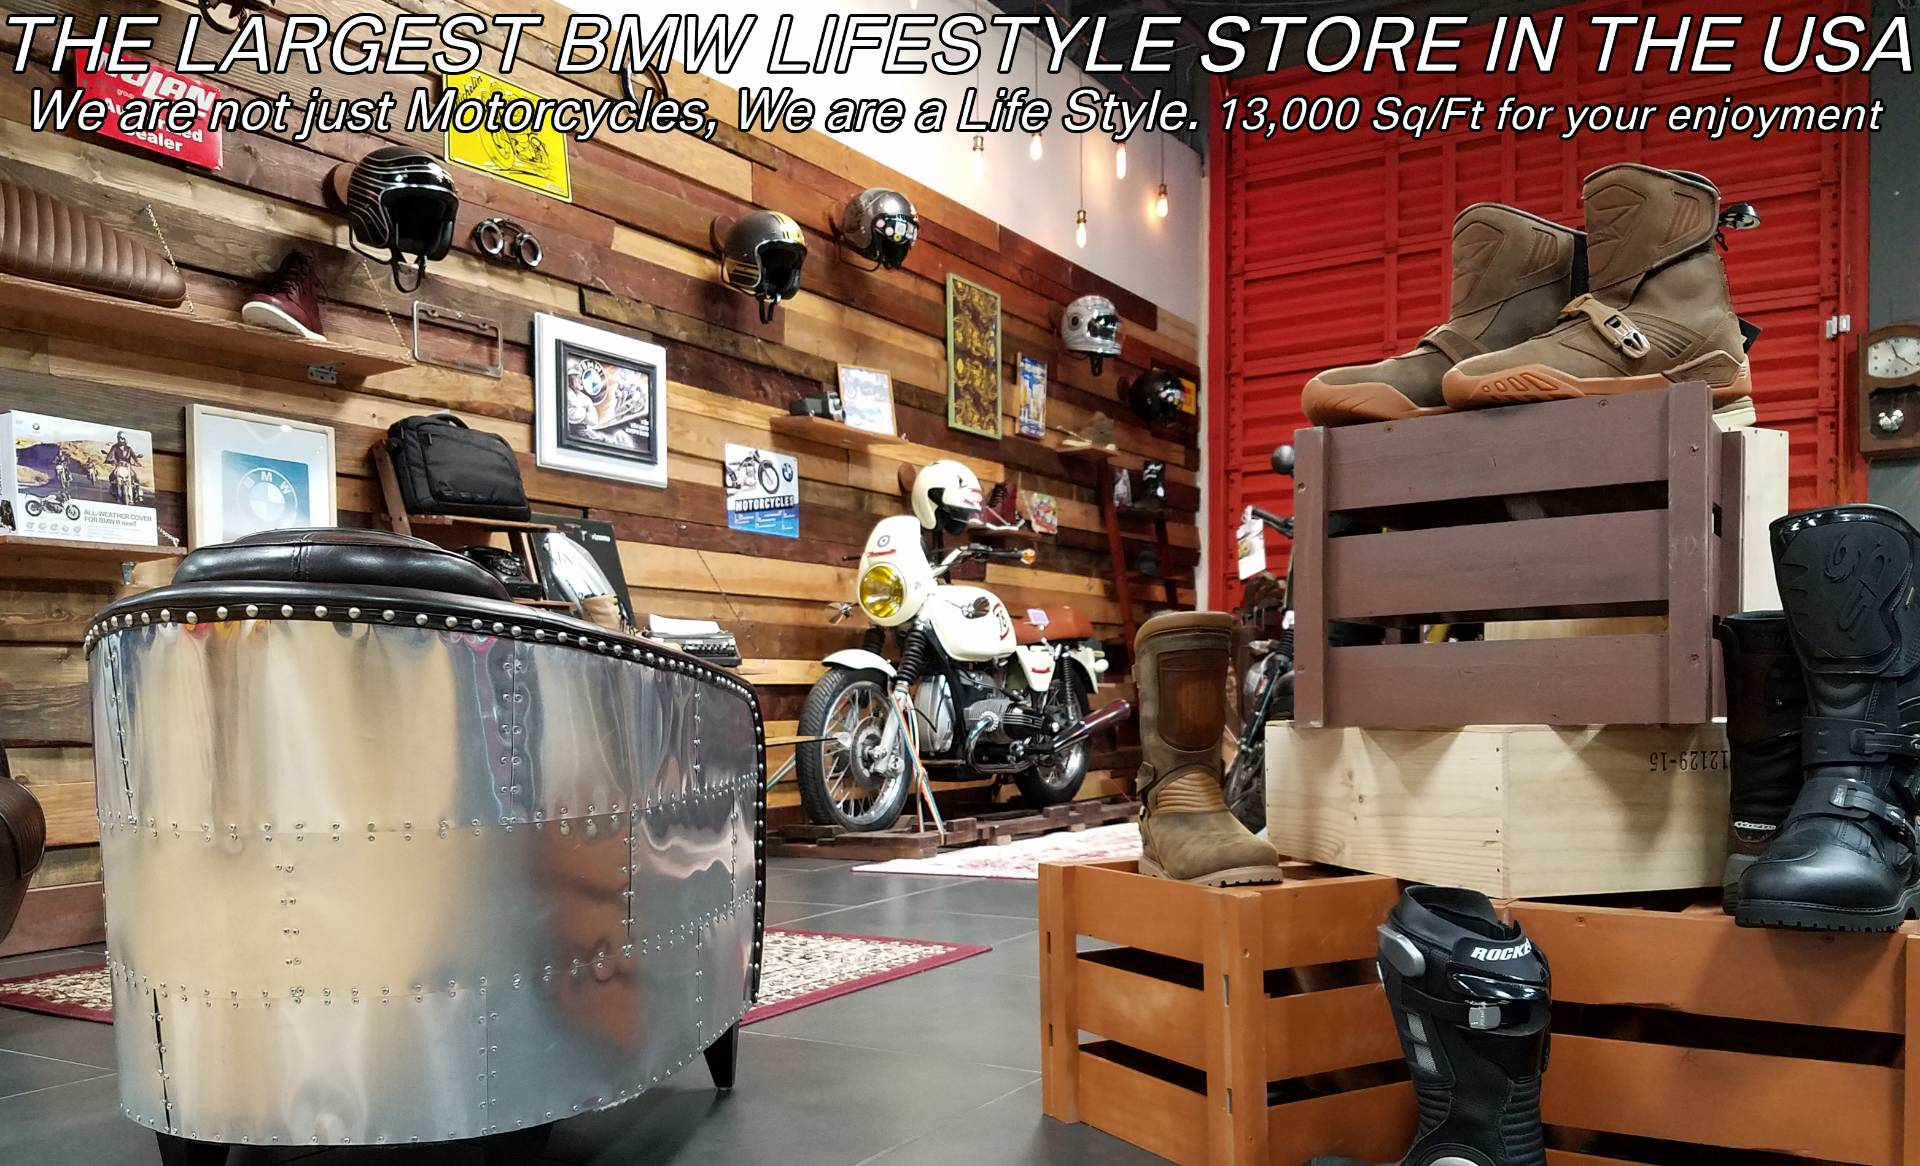 New 2019 BMW K 1600 B for sale, BMW K 1600B for sale, BMW Motorcycle K1600B, new BMW Bagger, Gran America. BMW Motorcycles of Miami, Motorcycles of Miami, Motorcycles Miami - Photo 39